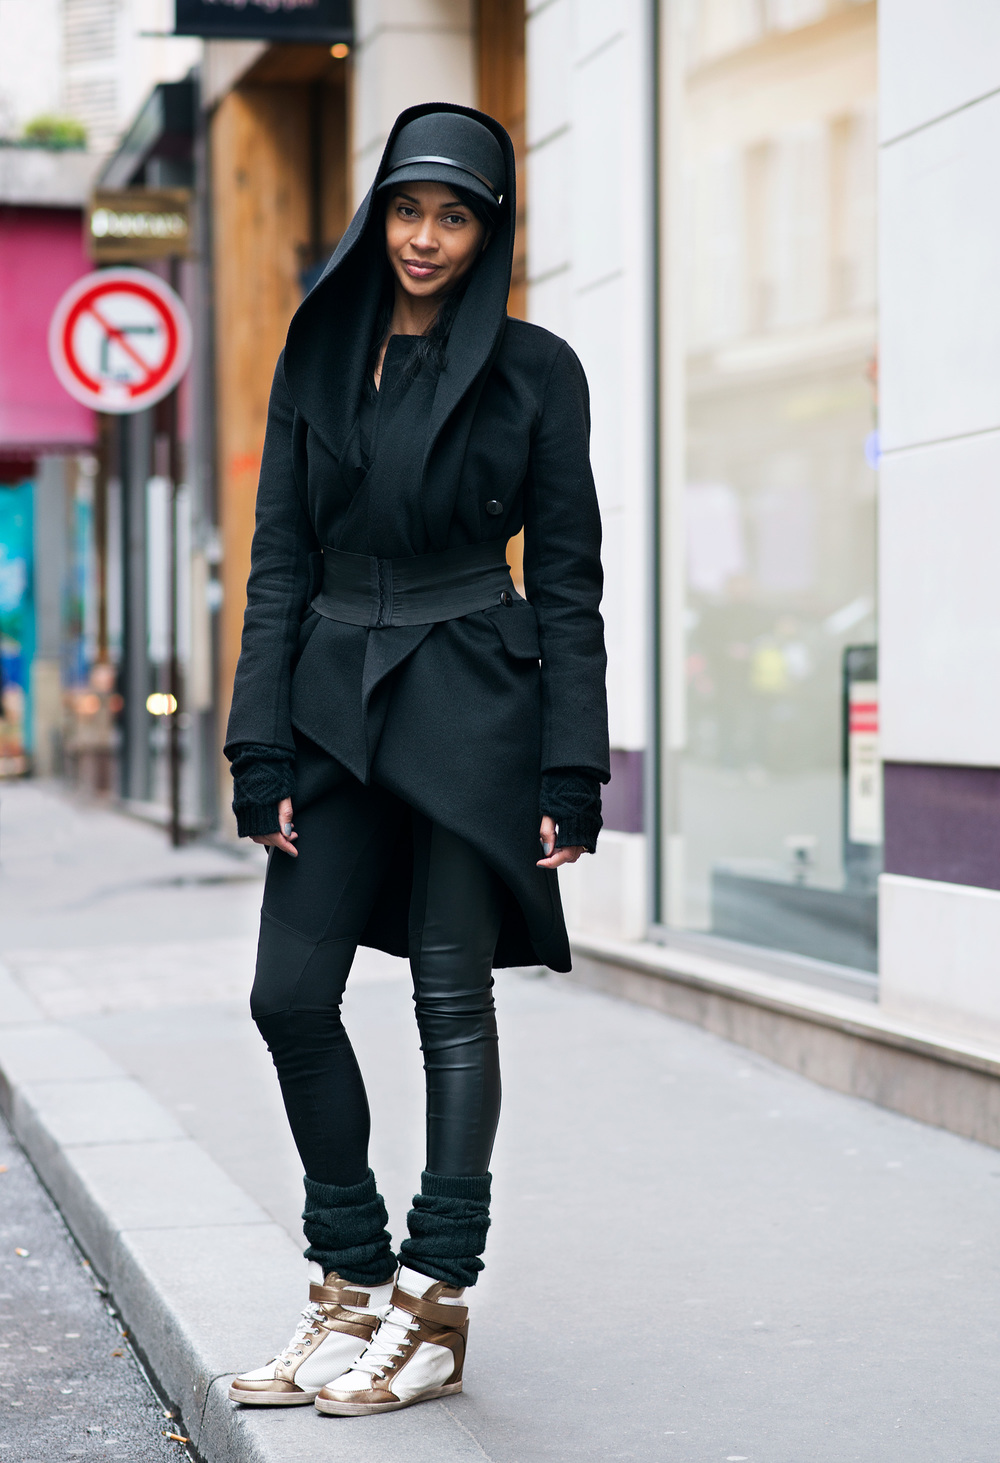 Black Winter The Locals Street Style From Copenhagen